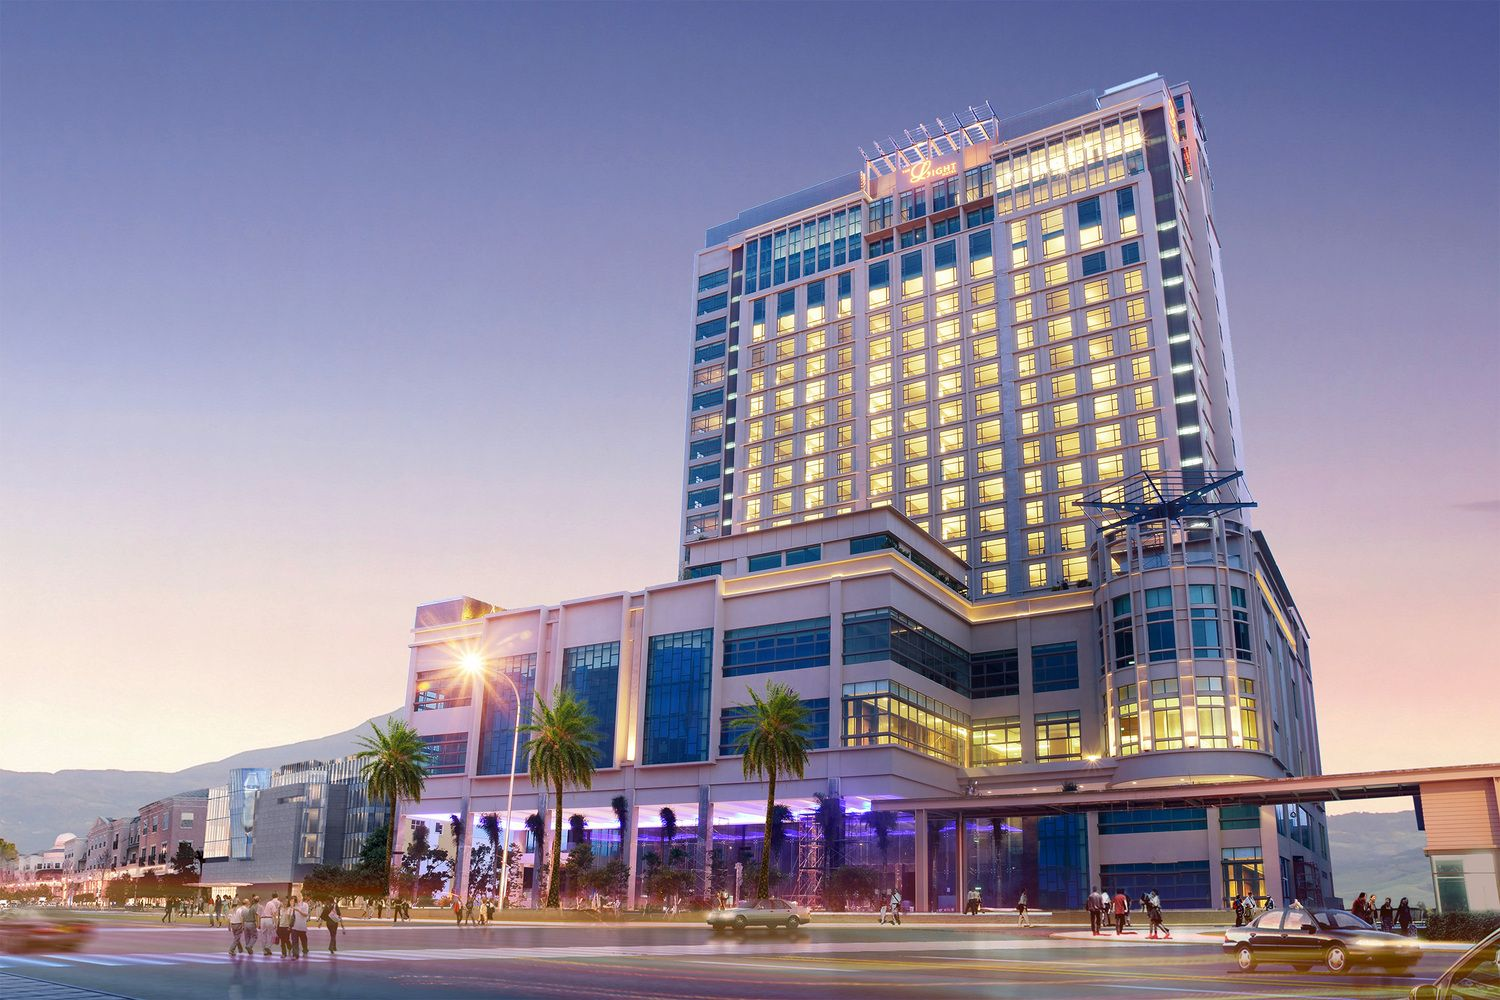 Building Exterior: HotelREZ Continues Asia Expansion With Signing Of New